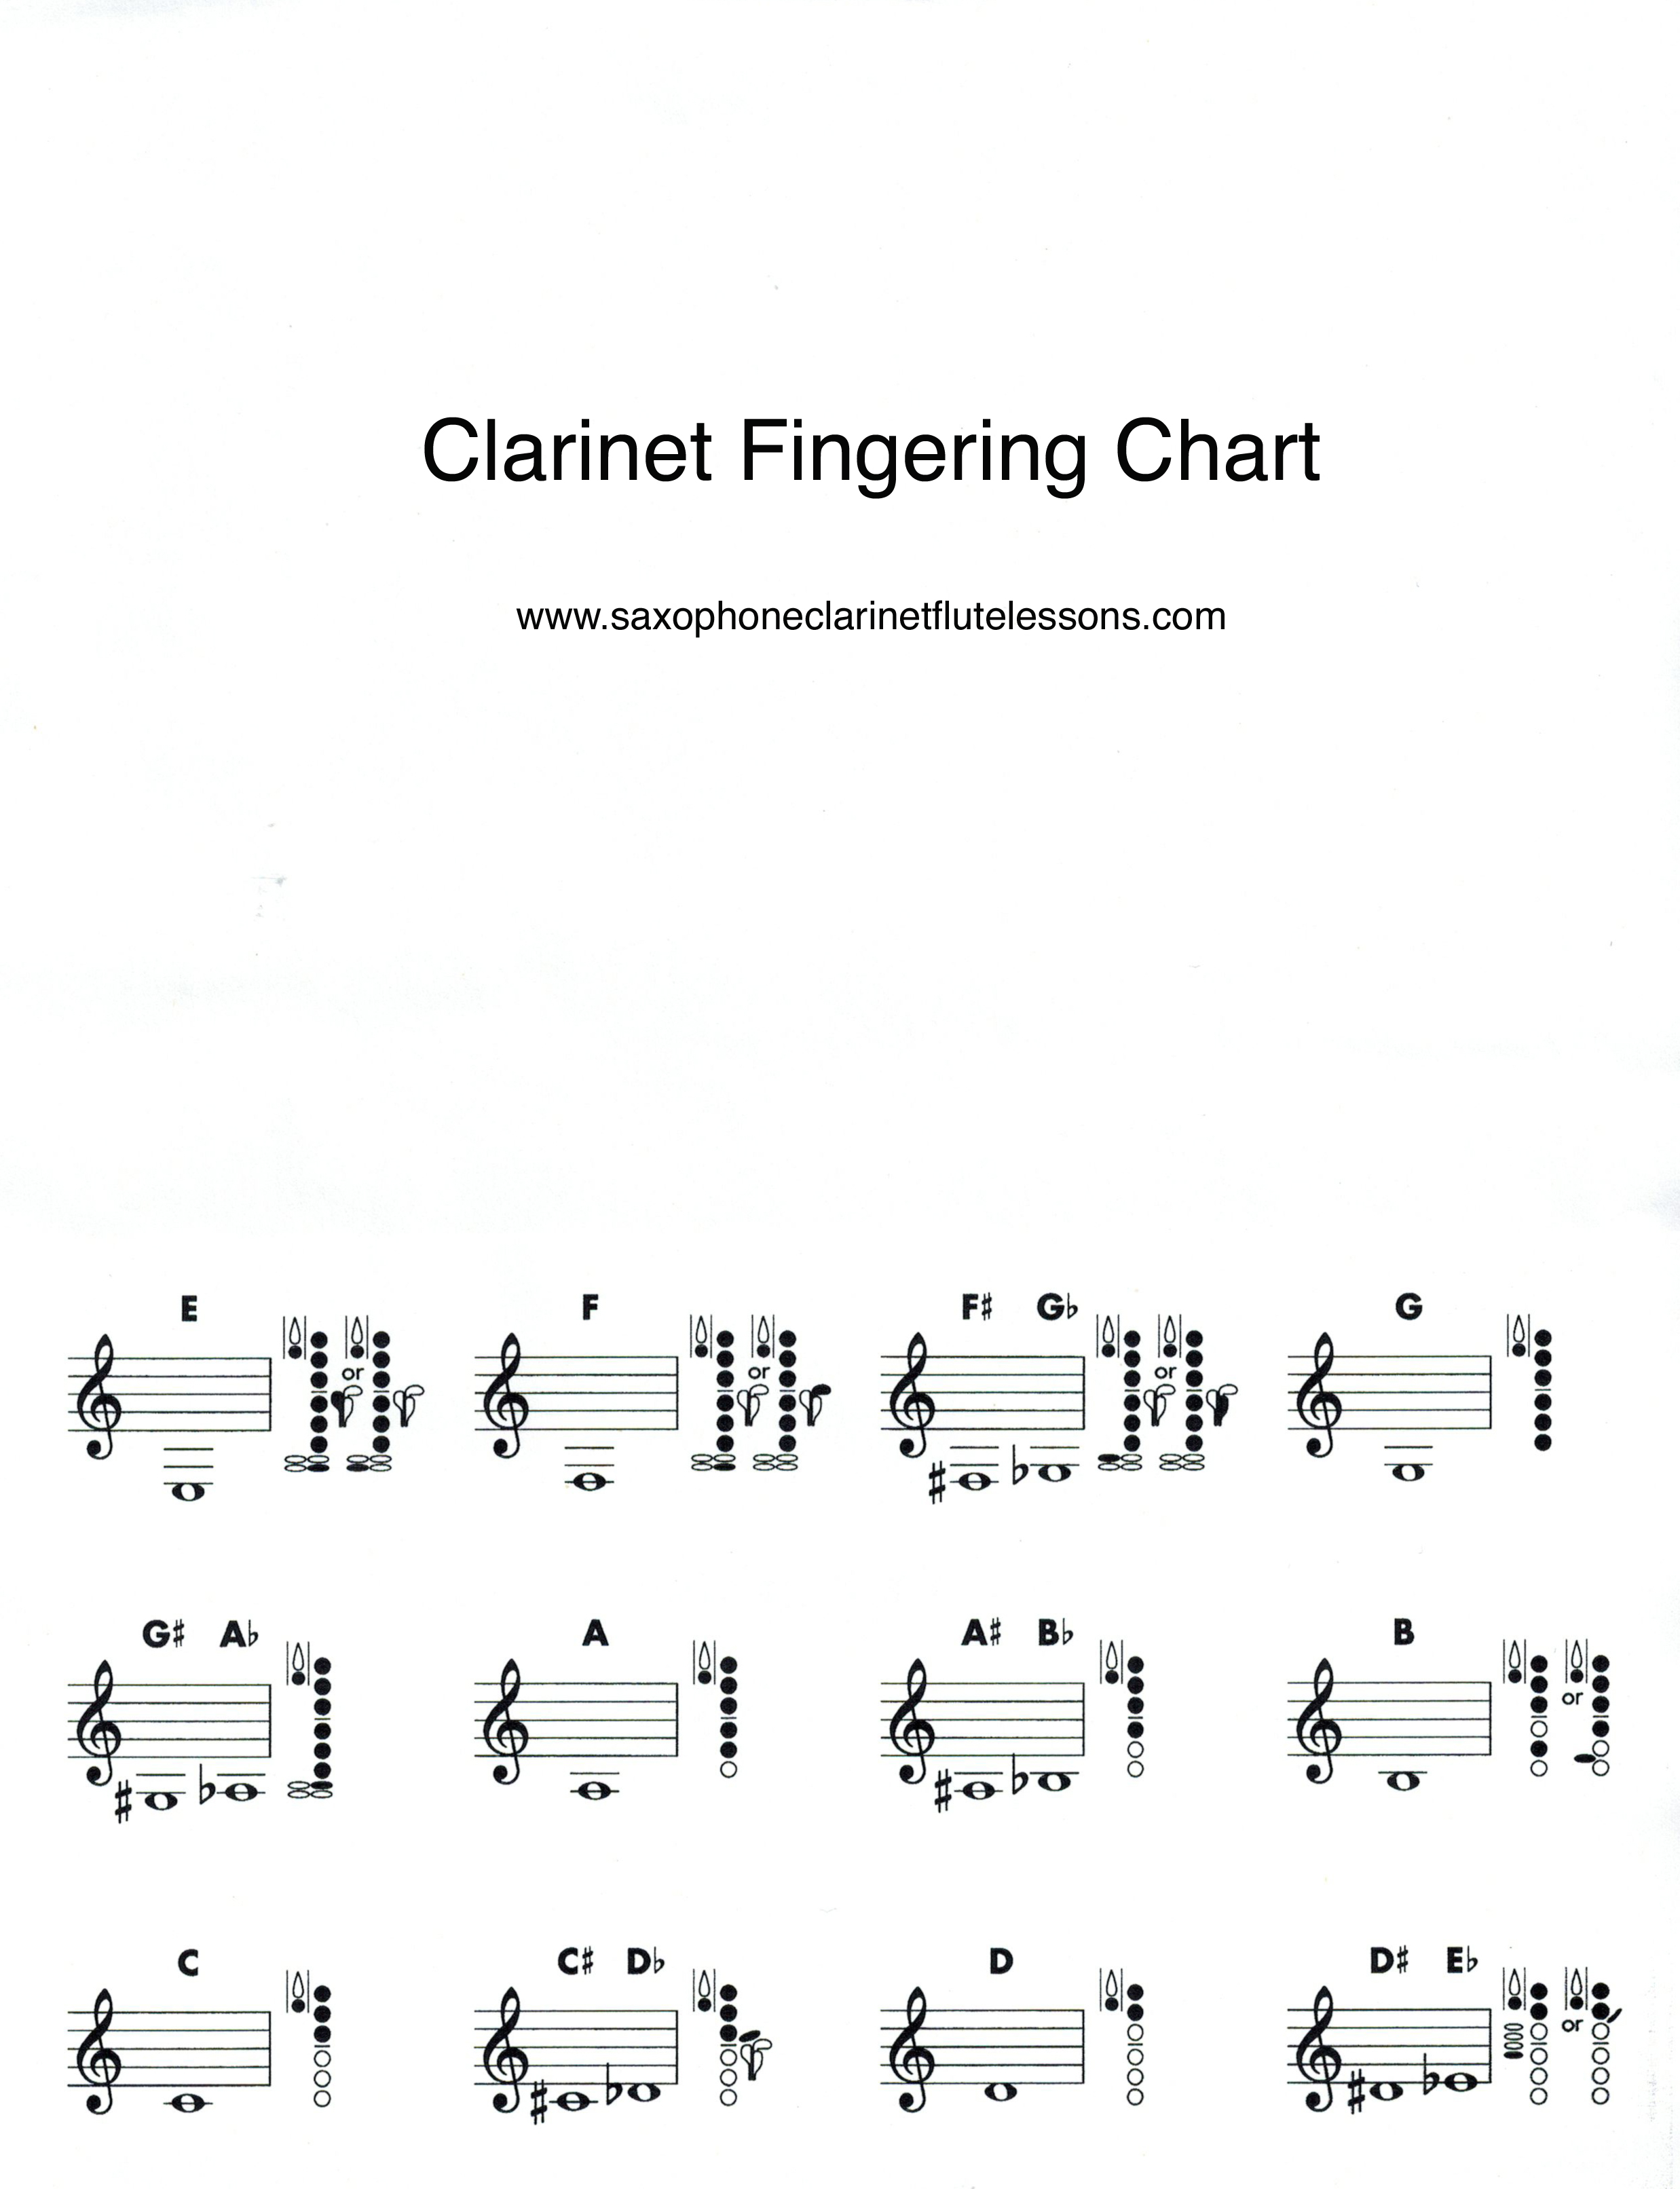 medium resolution of basic clarinet fingering chart saxophone clarinet and flute lessons with ken moran